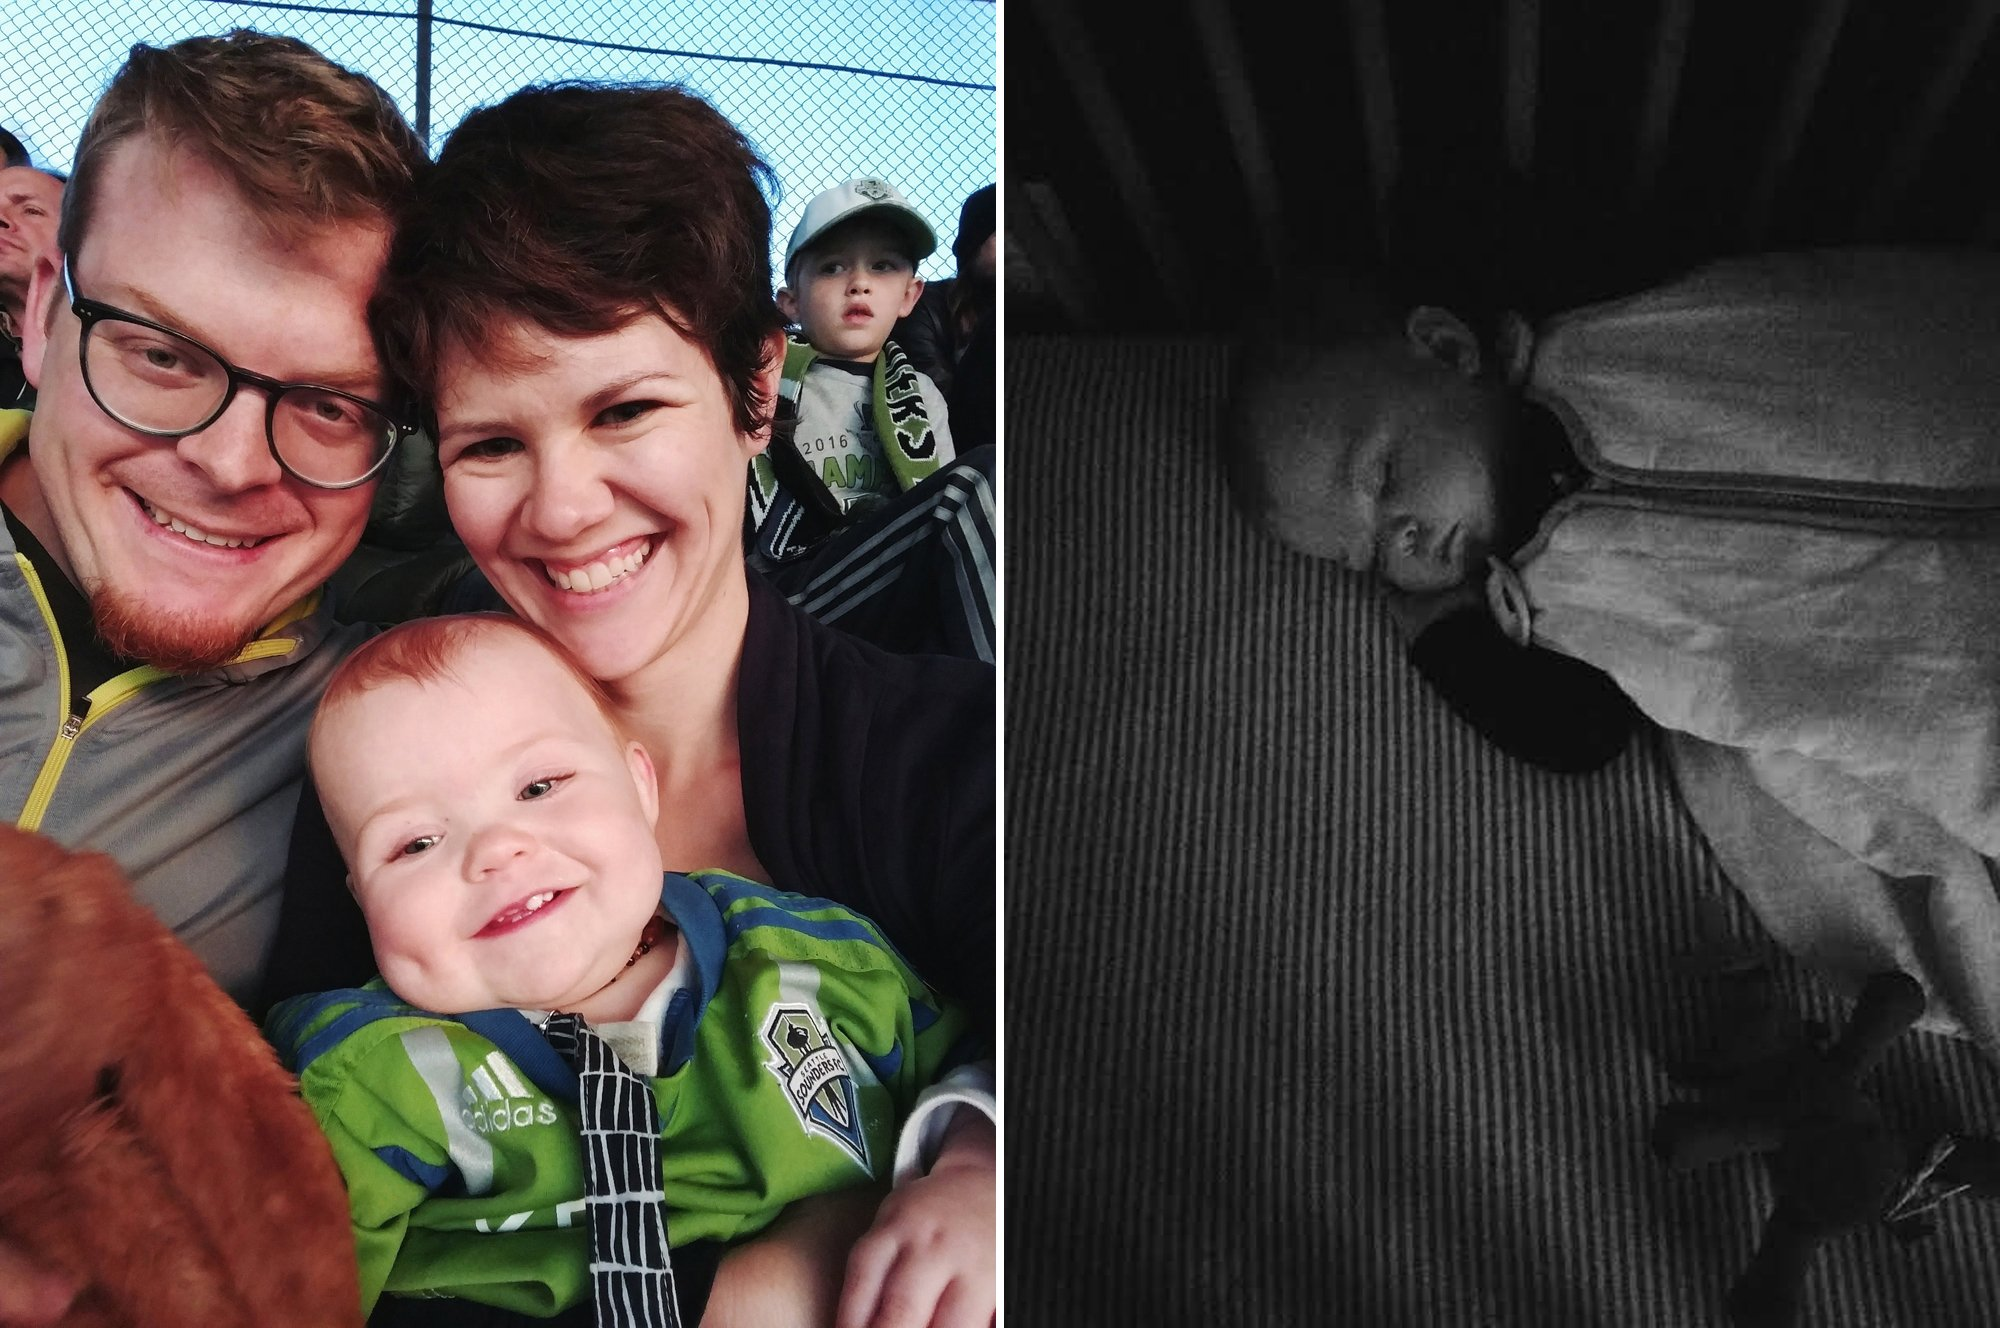 Baby at Sounders Game and Sleeping Hard